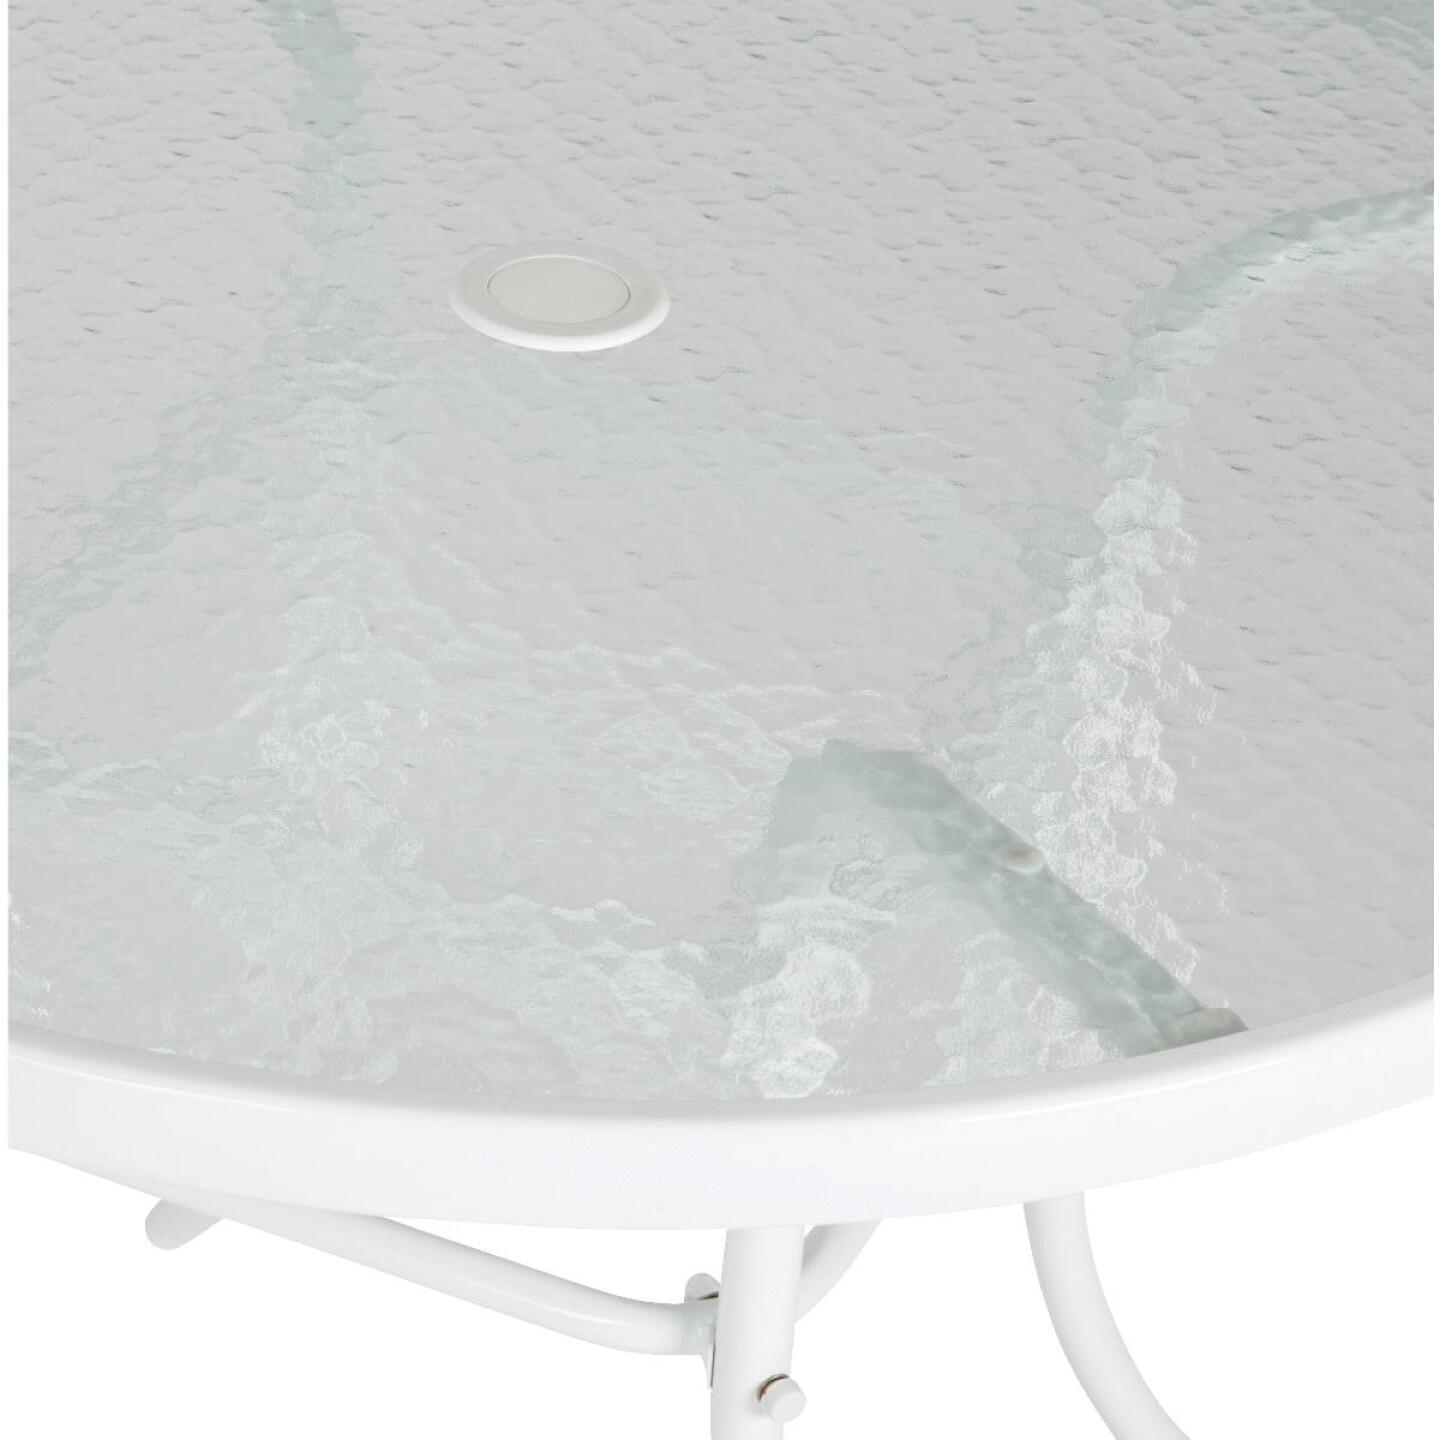 Outdoor Expressions 35 In. Round White Steel Table Image 2